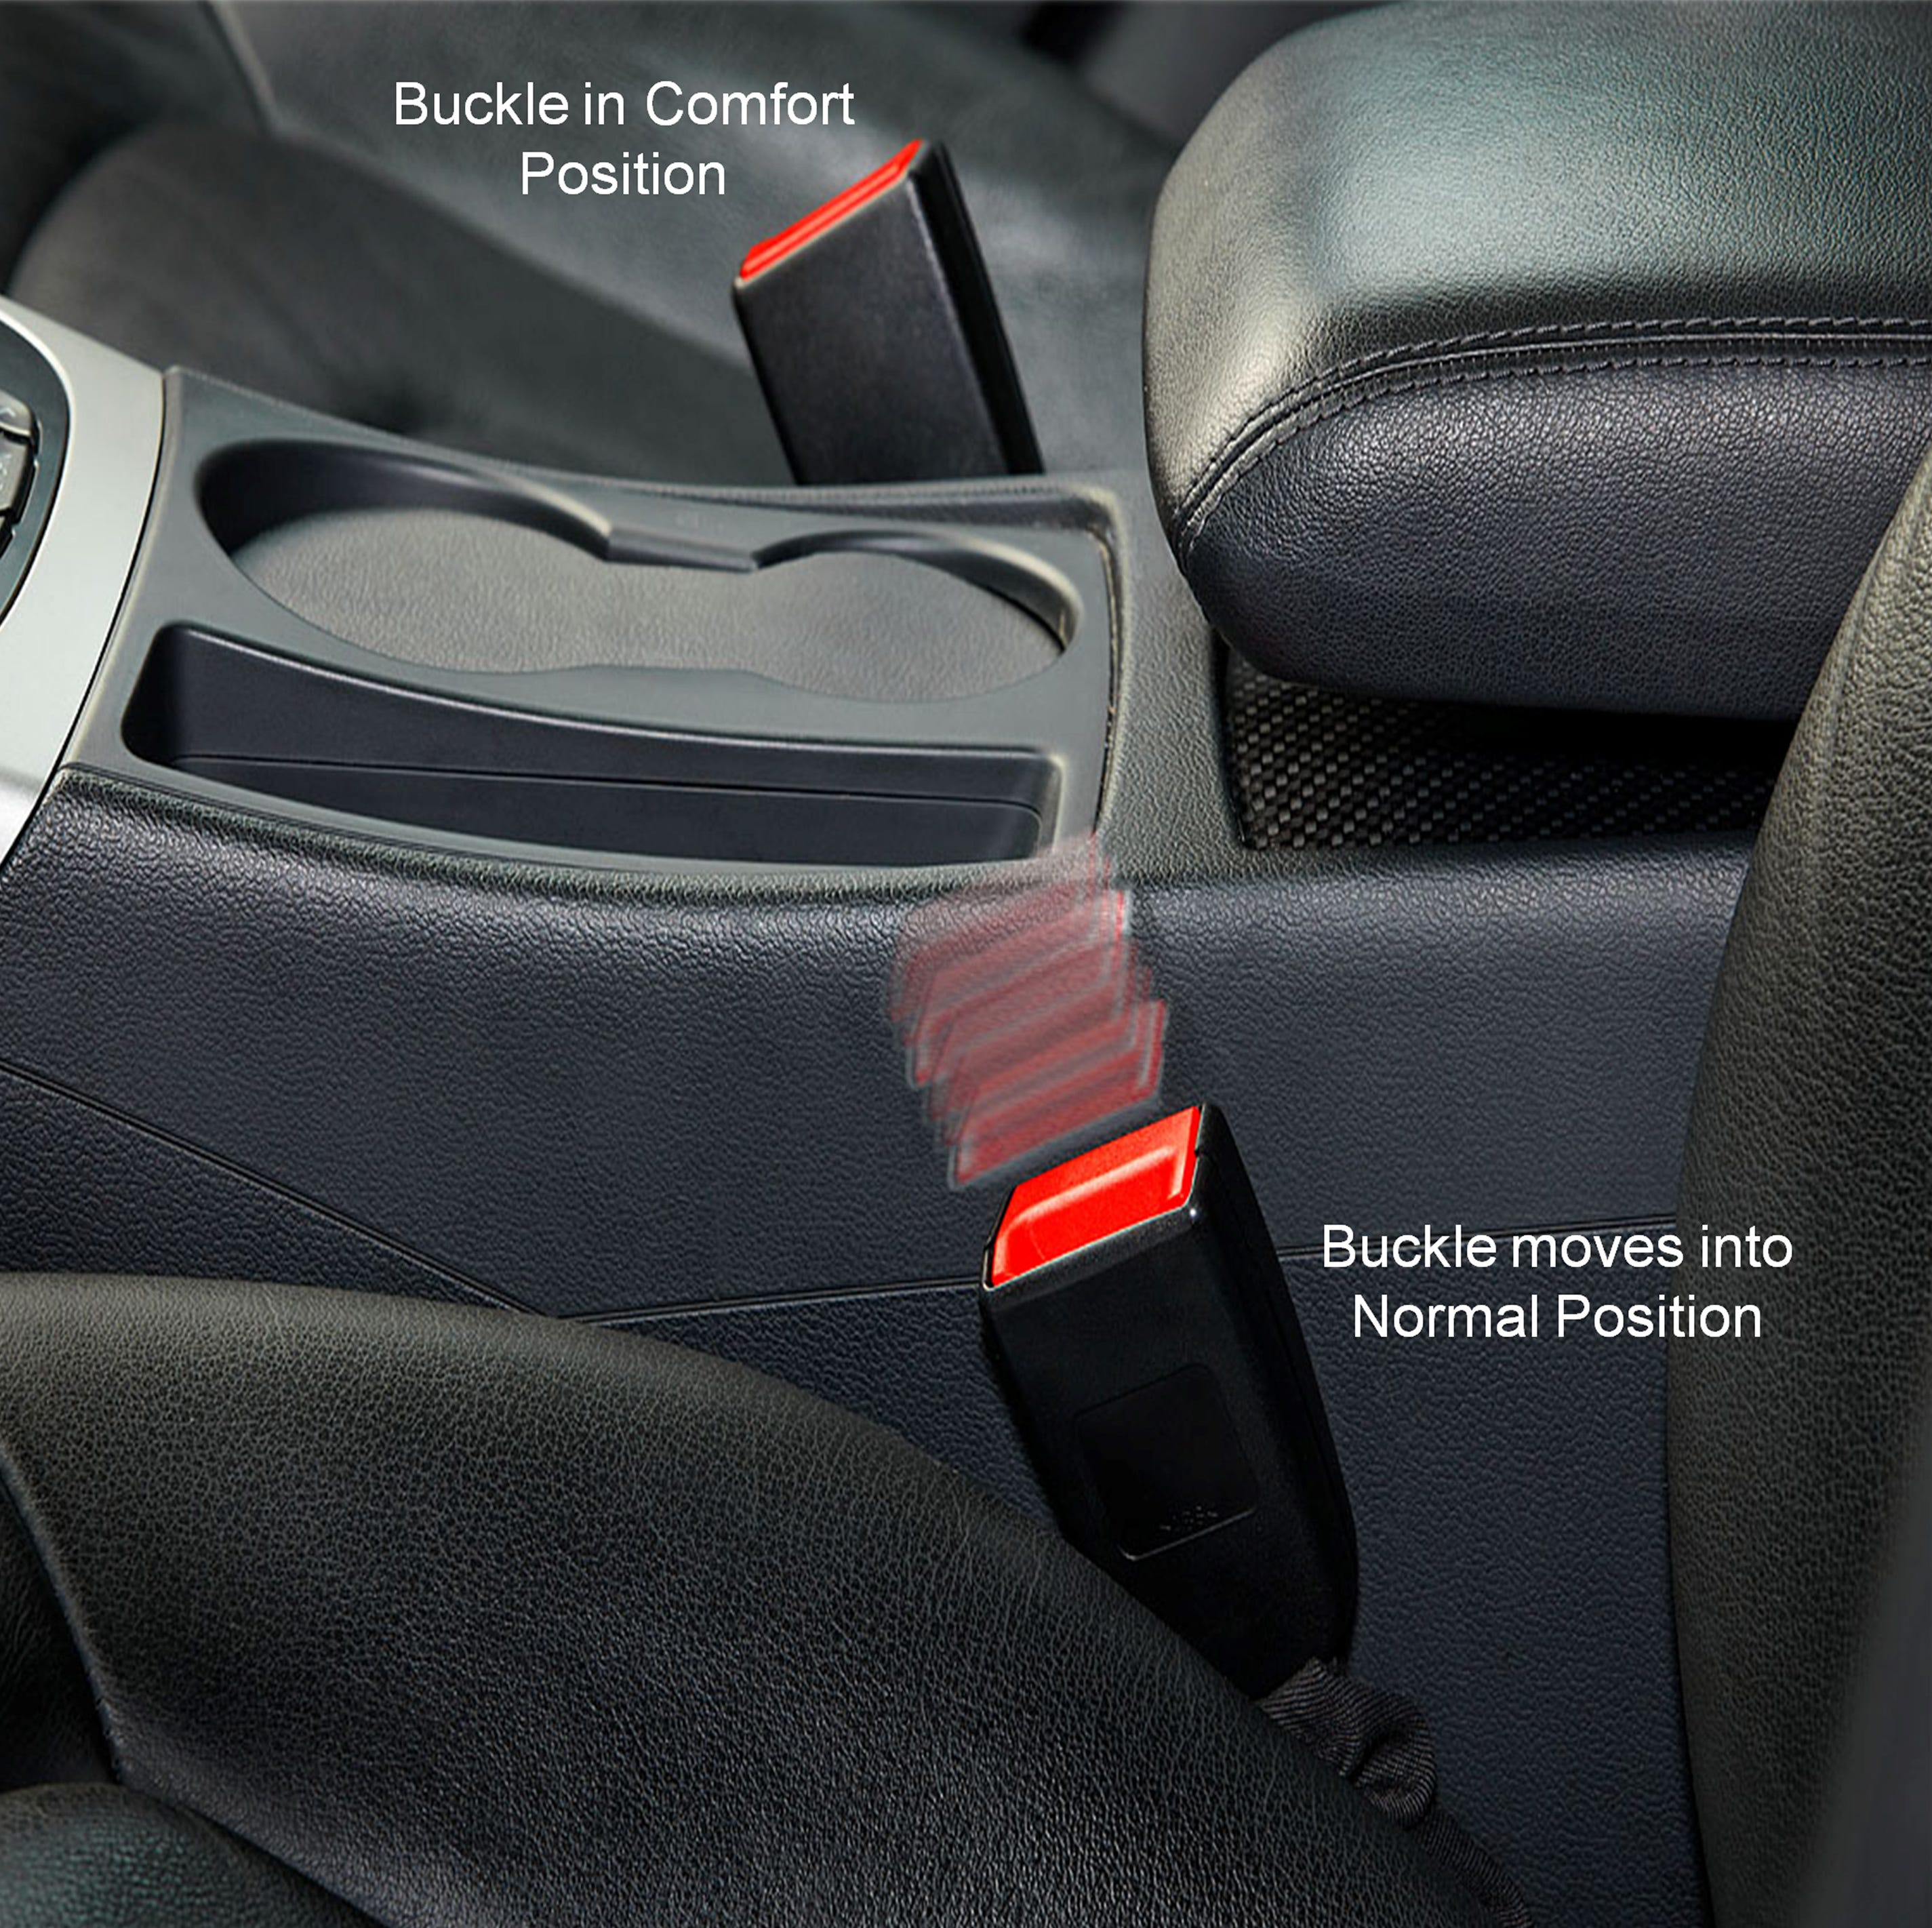 Your seat belt is in the wrong place. This new device fixes that